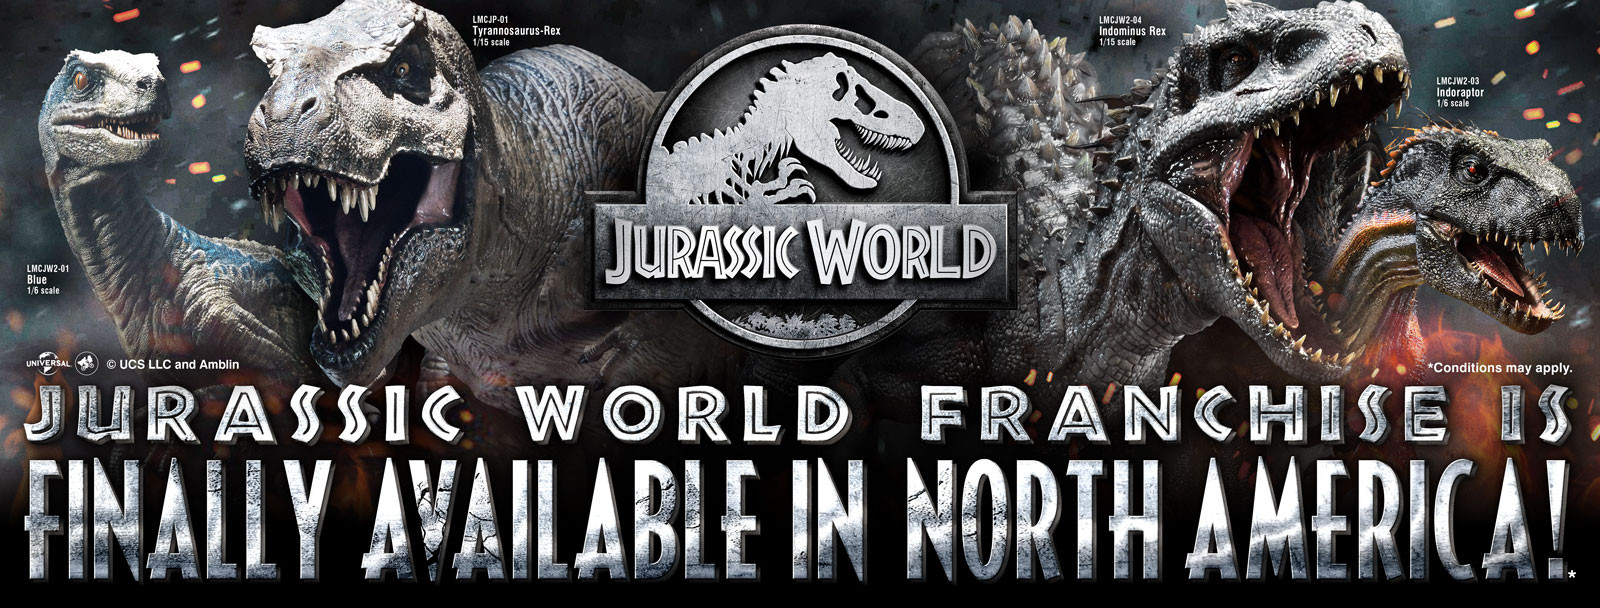 Jurassic World Franchise is finally available in North America!